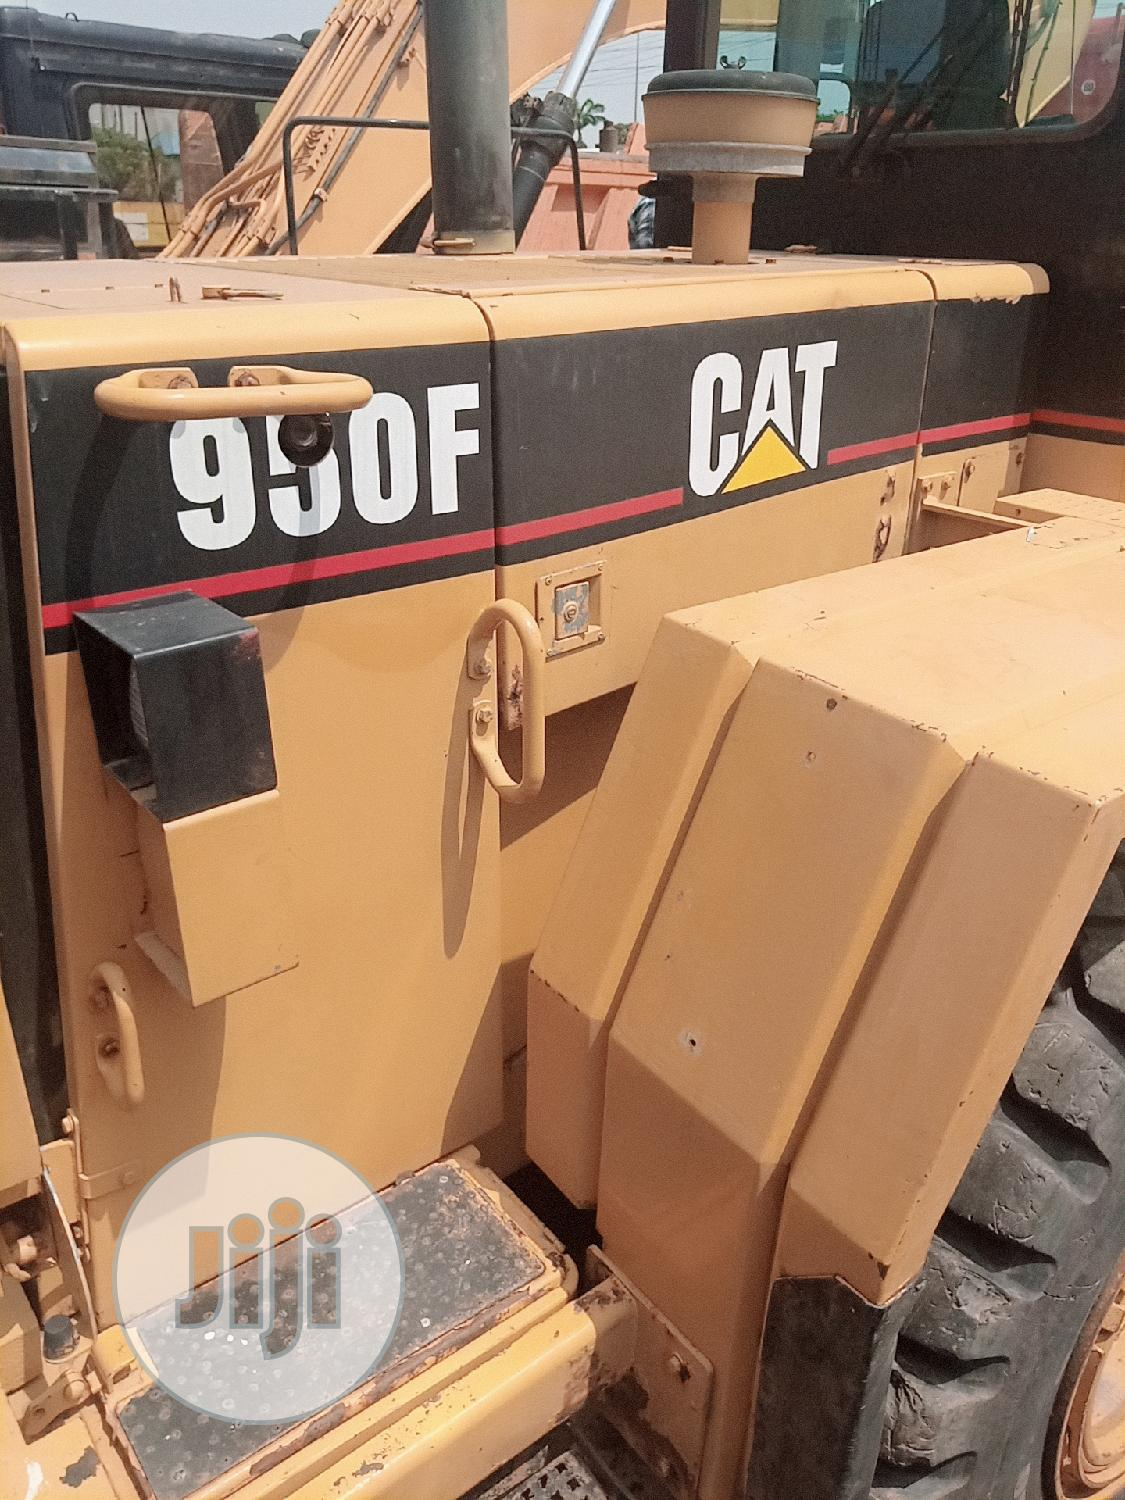 Archive: 950F CAT Payloader Available For Sale